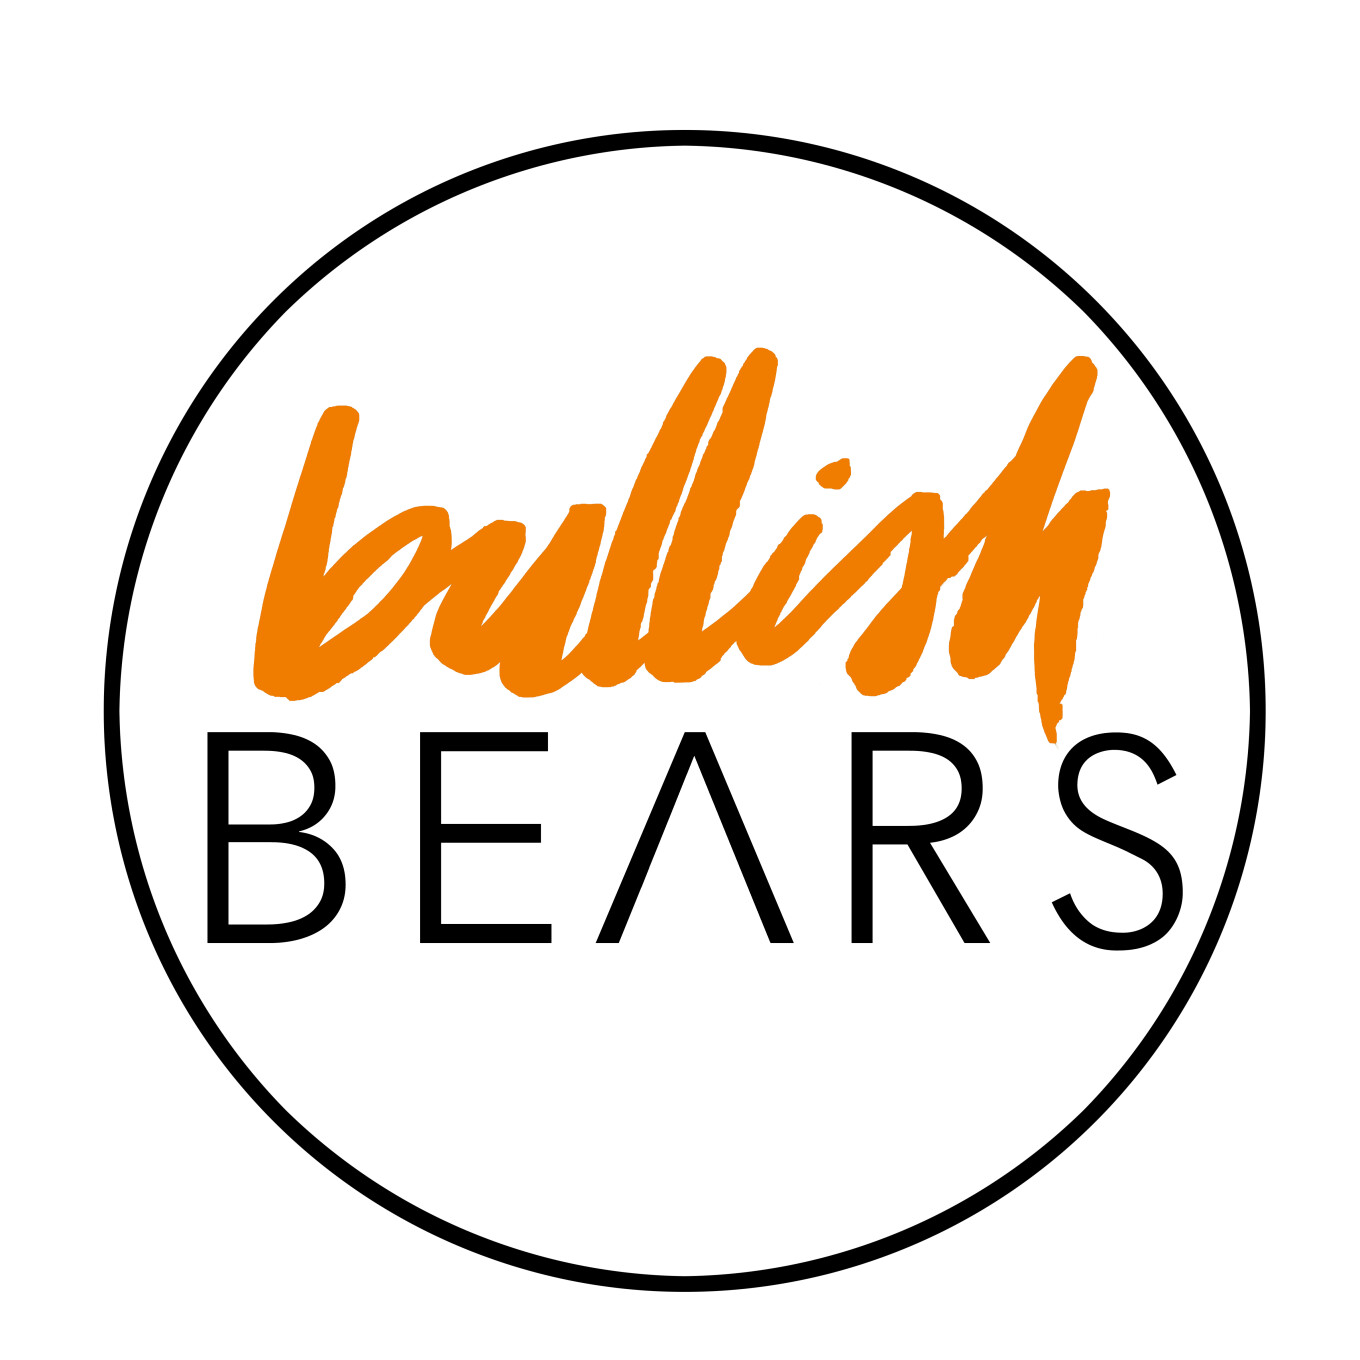 Bullish Bears Trading Community